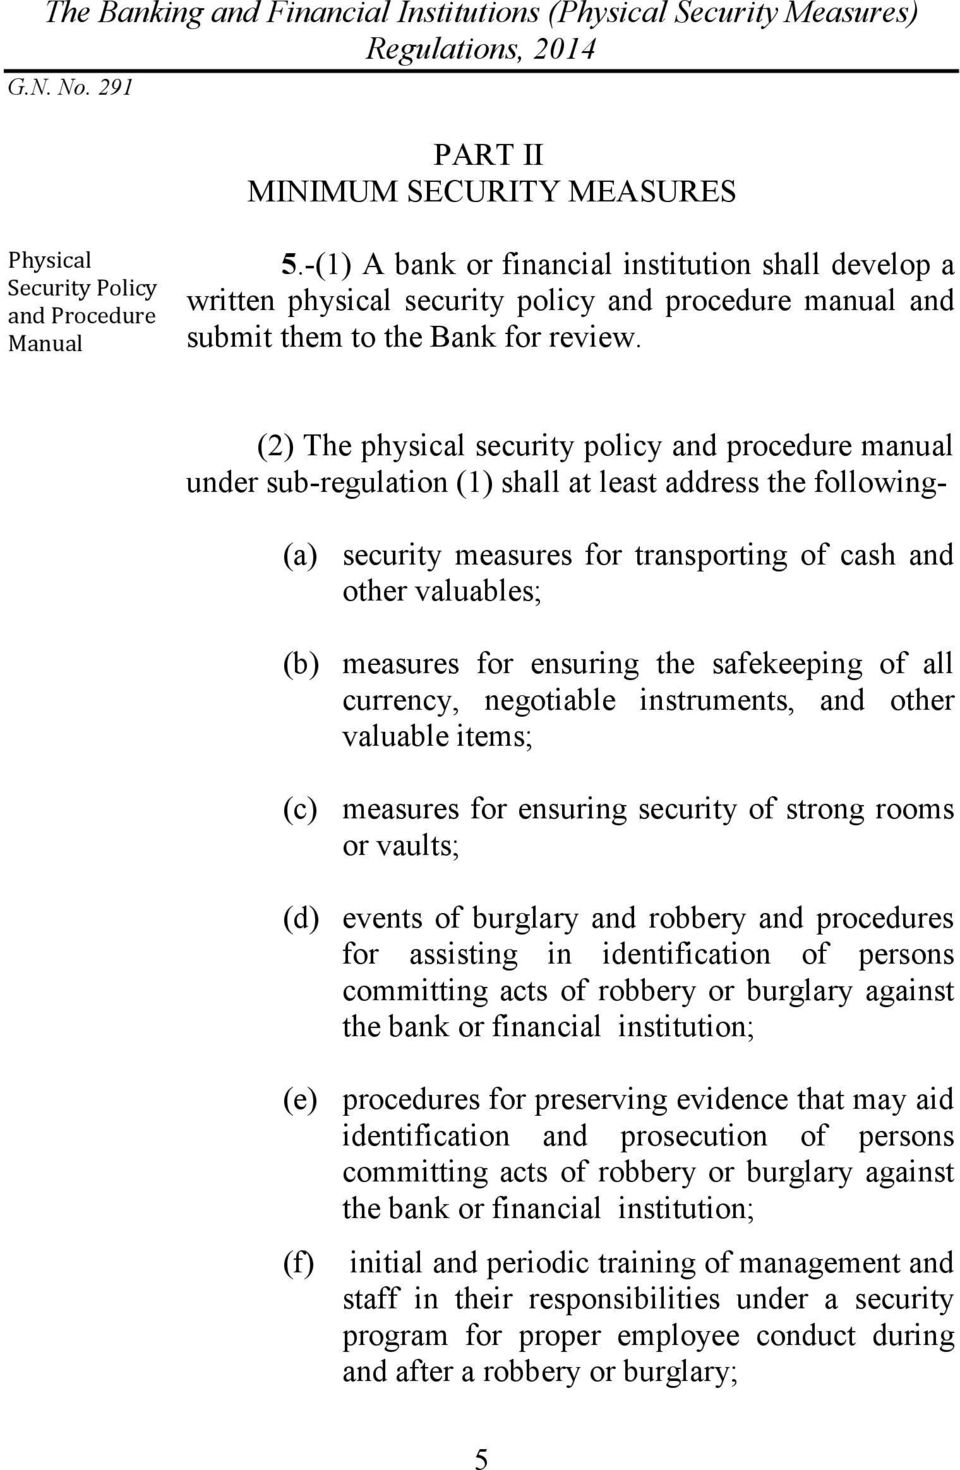 (2) The physical security policy and procedure manual under sub-regulation (1) shall at least address the following- (a) security measures for transporting of cash and other valuables; (b) measures